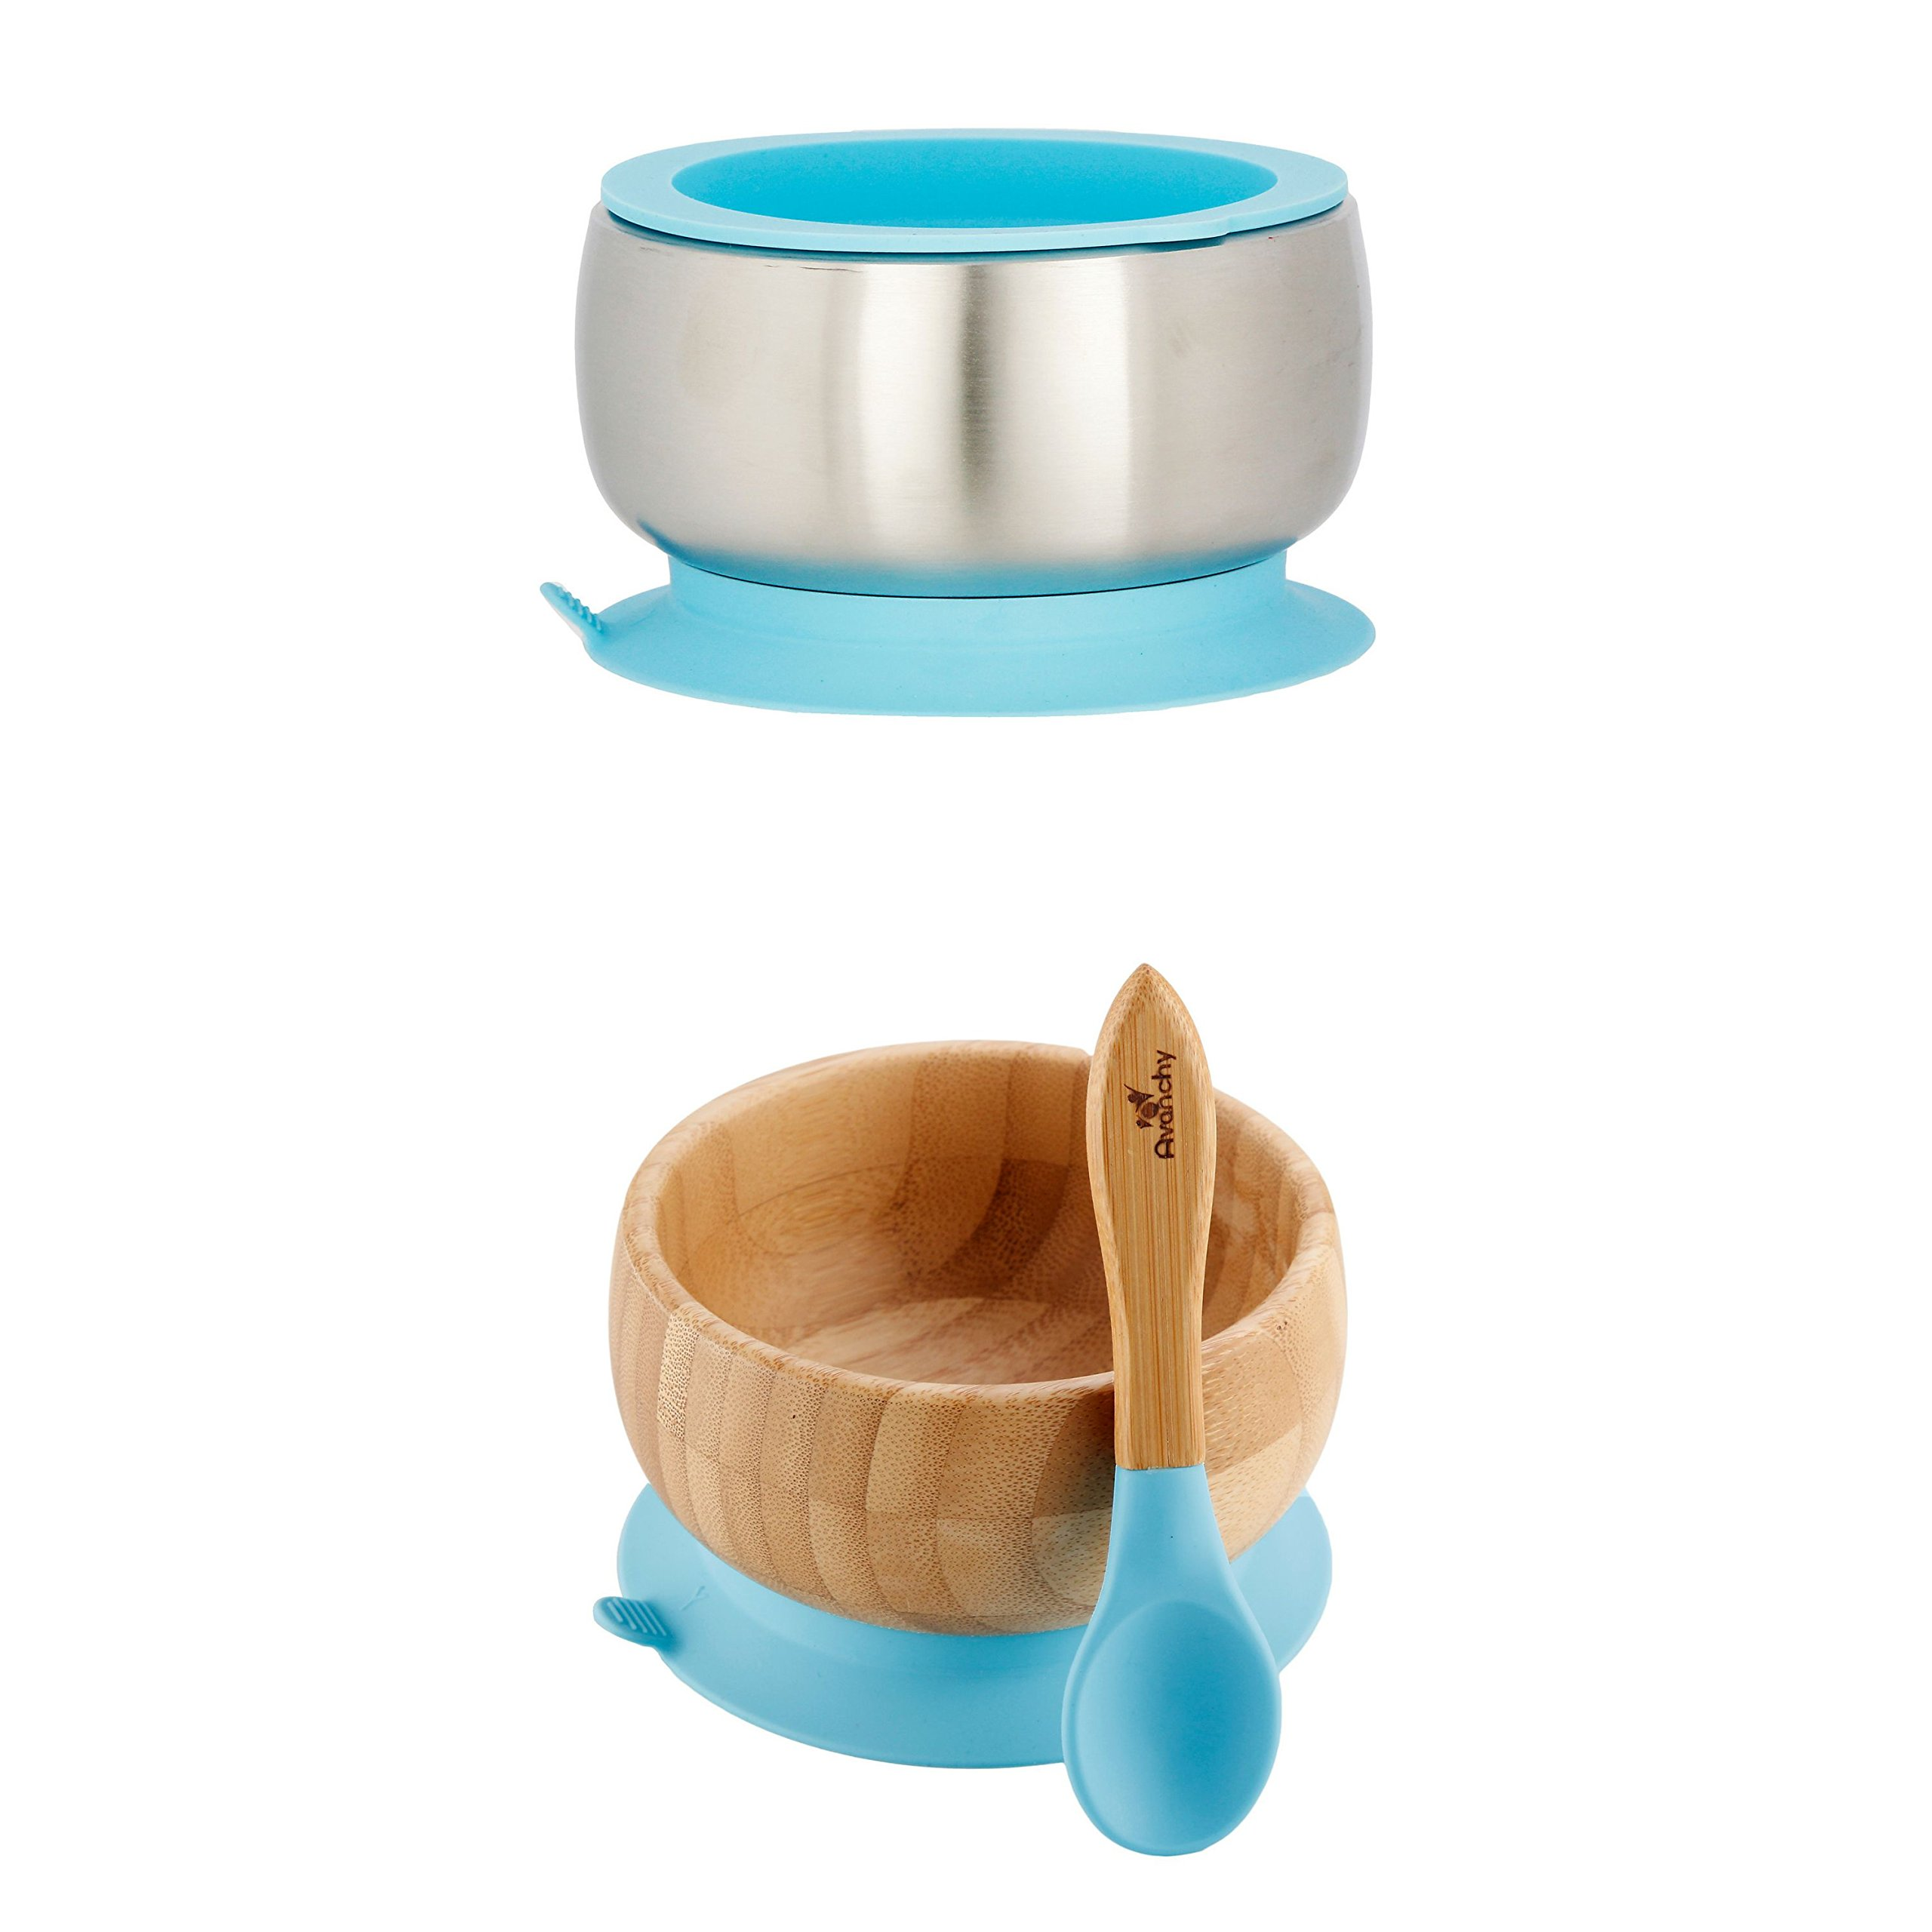 Avanchy Sustainable Bundle Blue - Bamboo Baby Bowls Set + Stainless Steel Baby Bowl Set. Baby Shower, Baby Registry, Home Set. Baby Girl, Baby Boy, Unisex. FDA Approved, BPA Free.